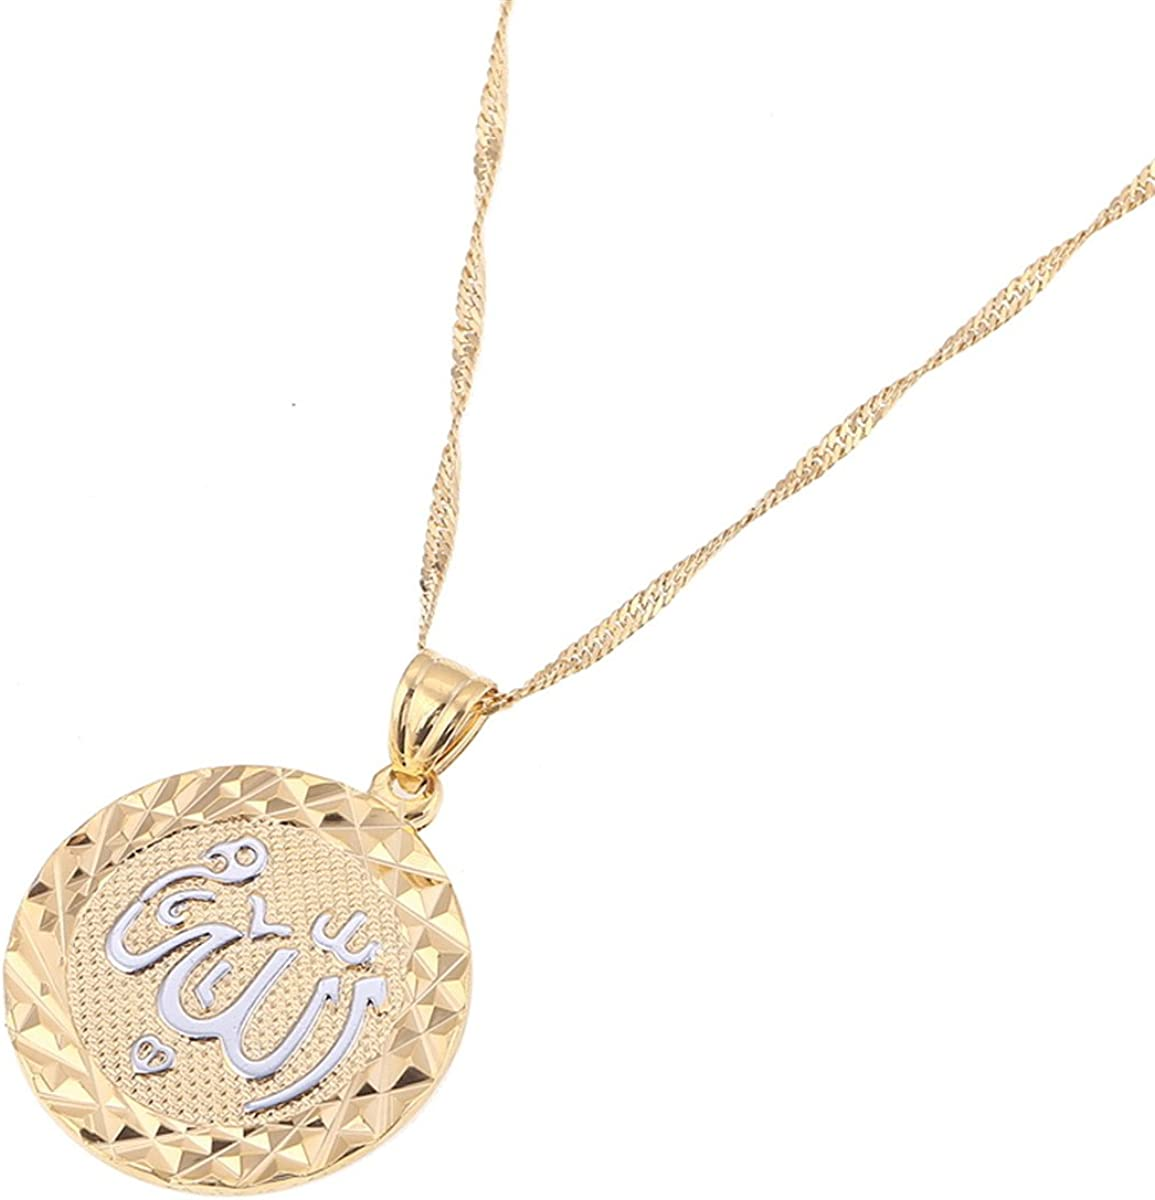 Platinum 24K New Islamic Allah Pendant Charms Choker Necklace Religious Muslim Jewelry